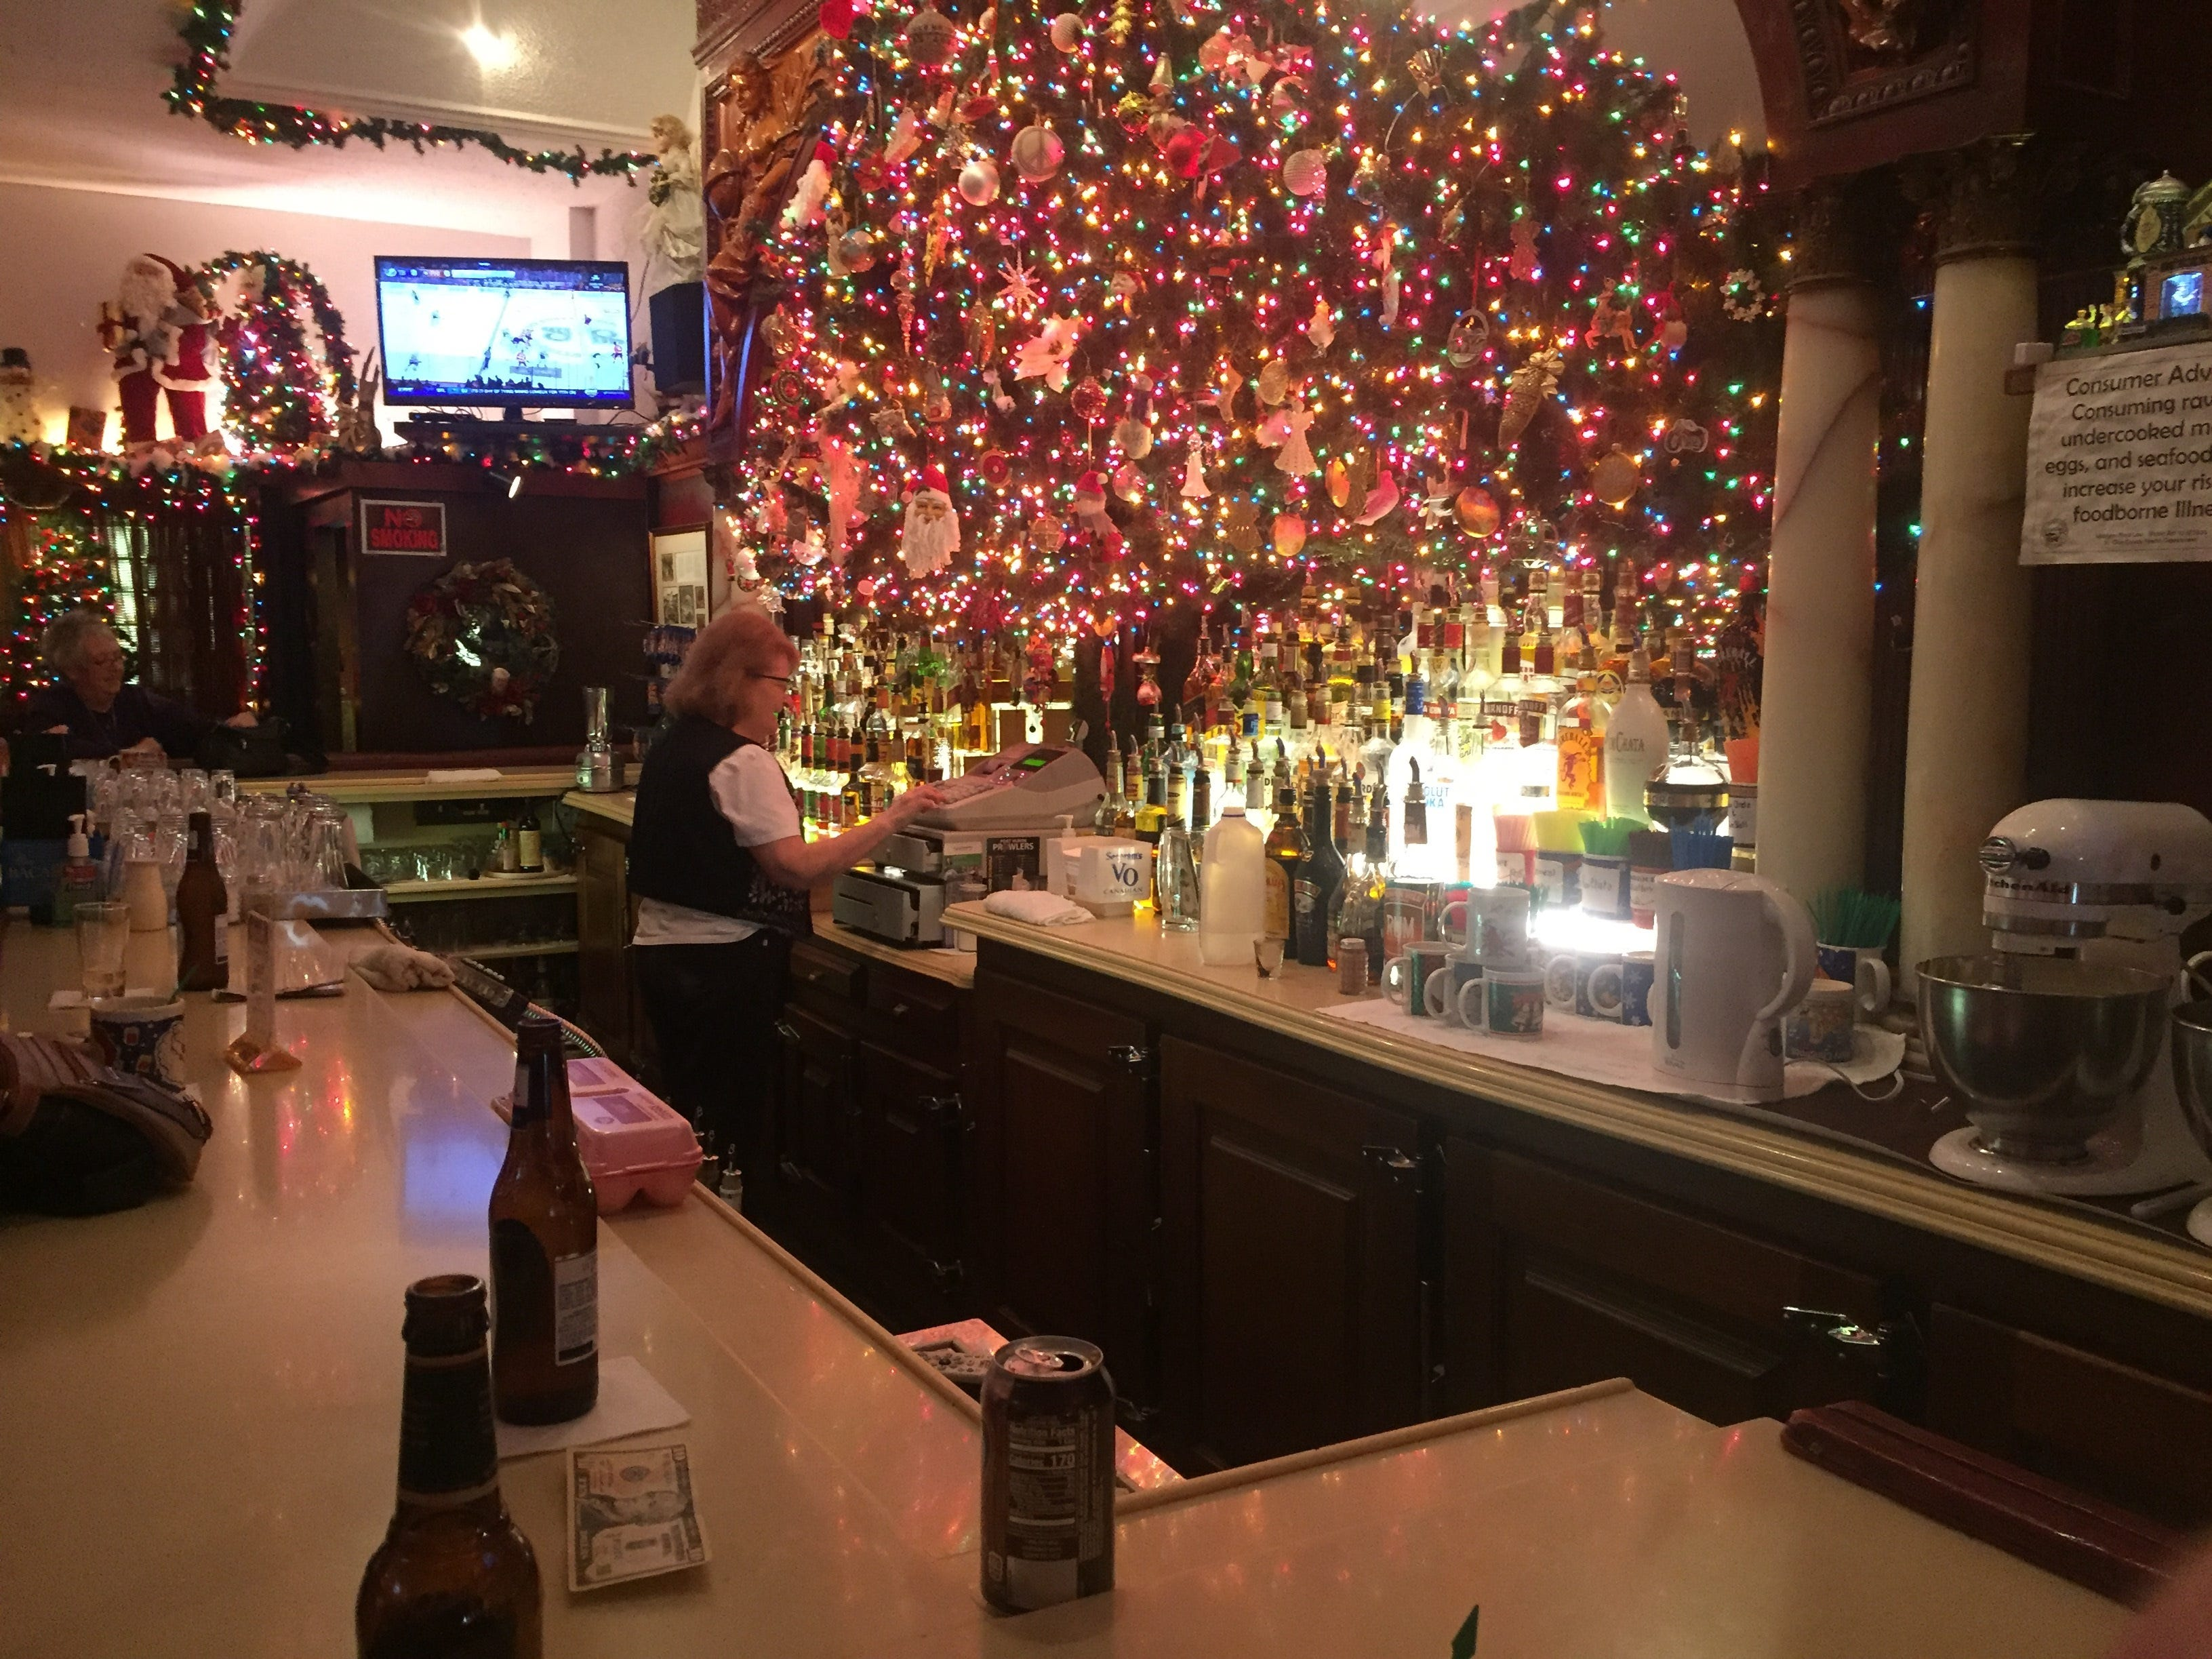 Sue Dunn is dwarfed by the large display of Christmas lights behind the bar at the Brass Rail.